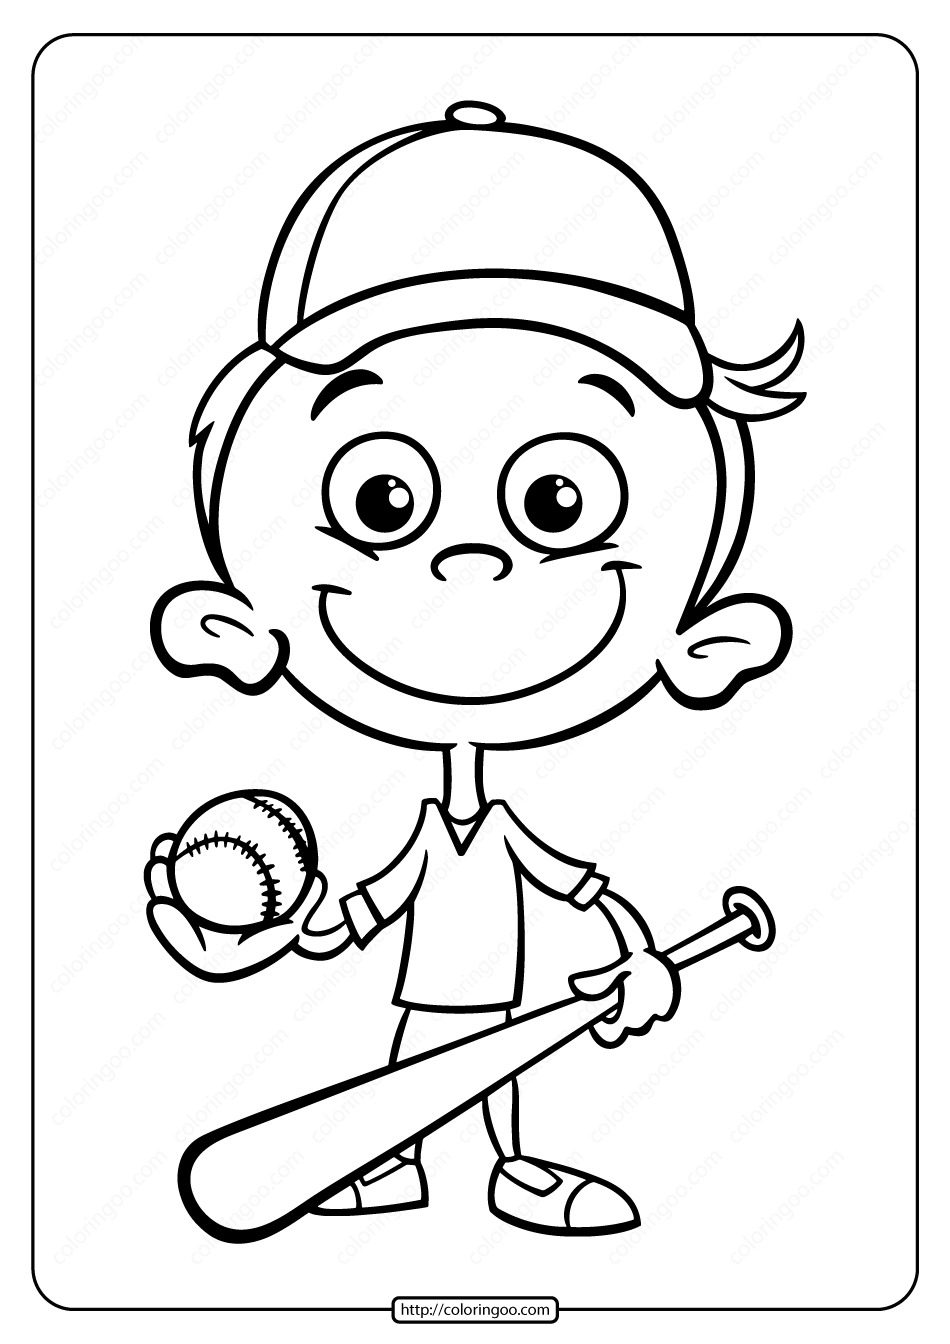 Printable Baseball Player Boy Coloring Page